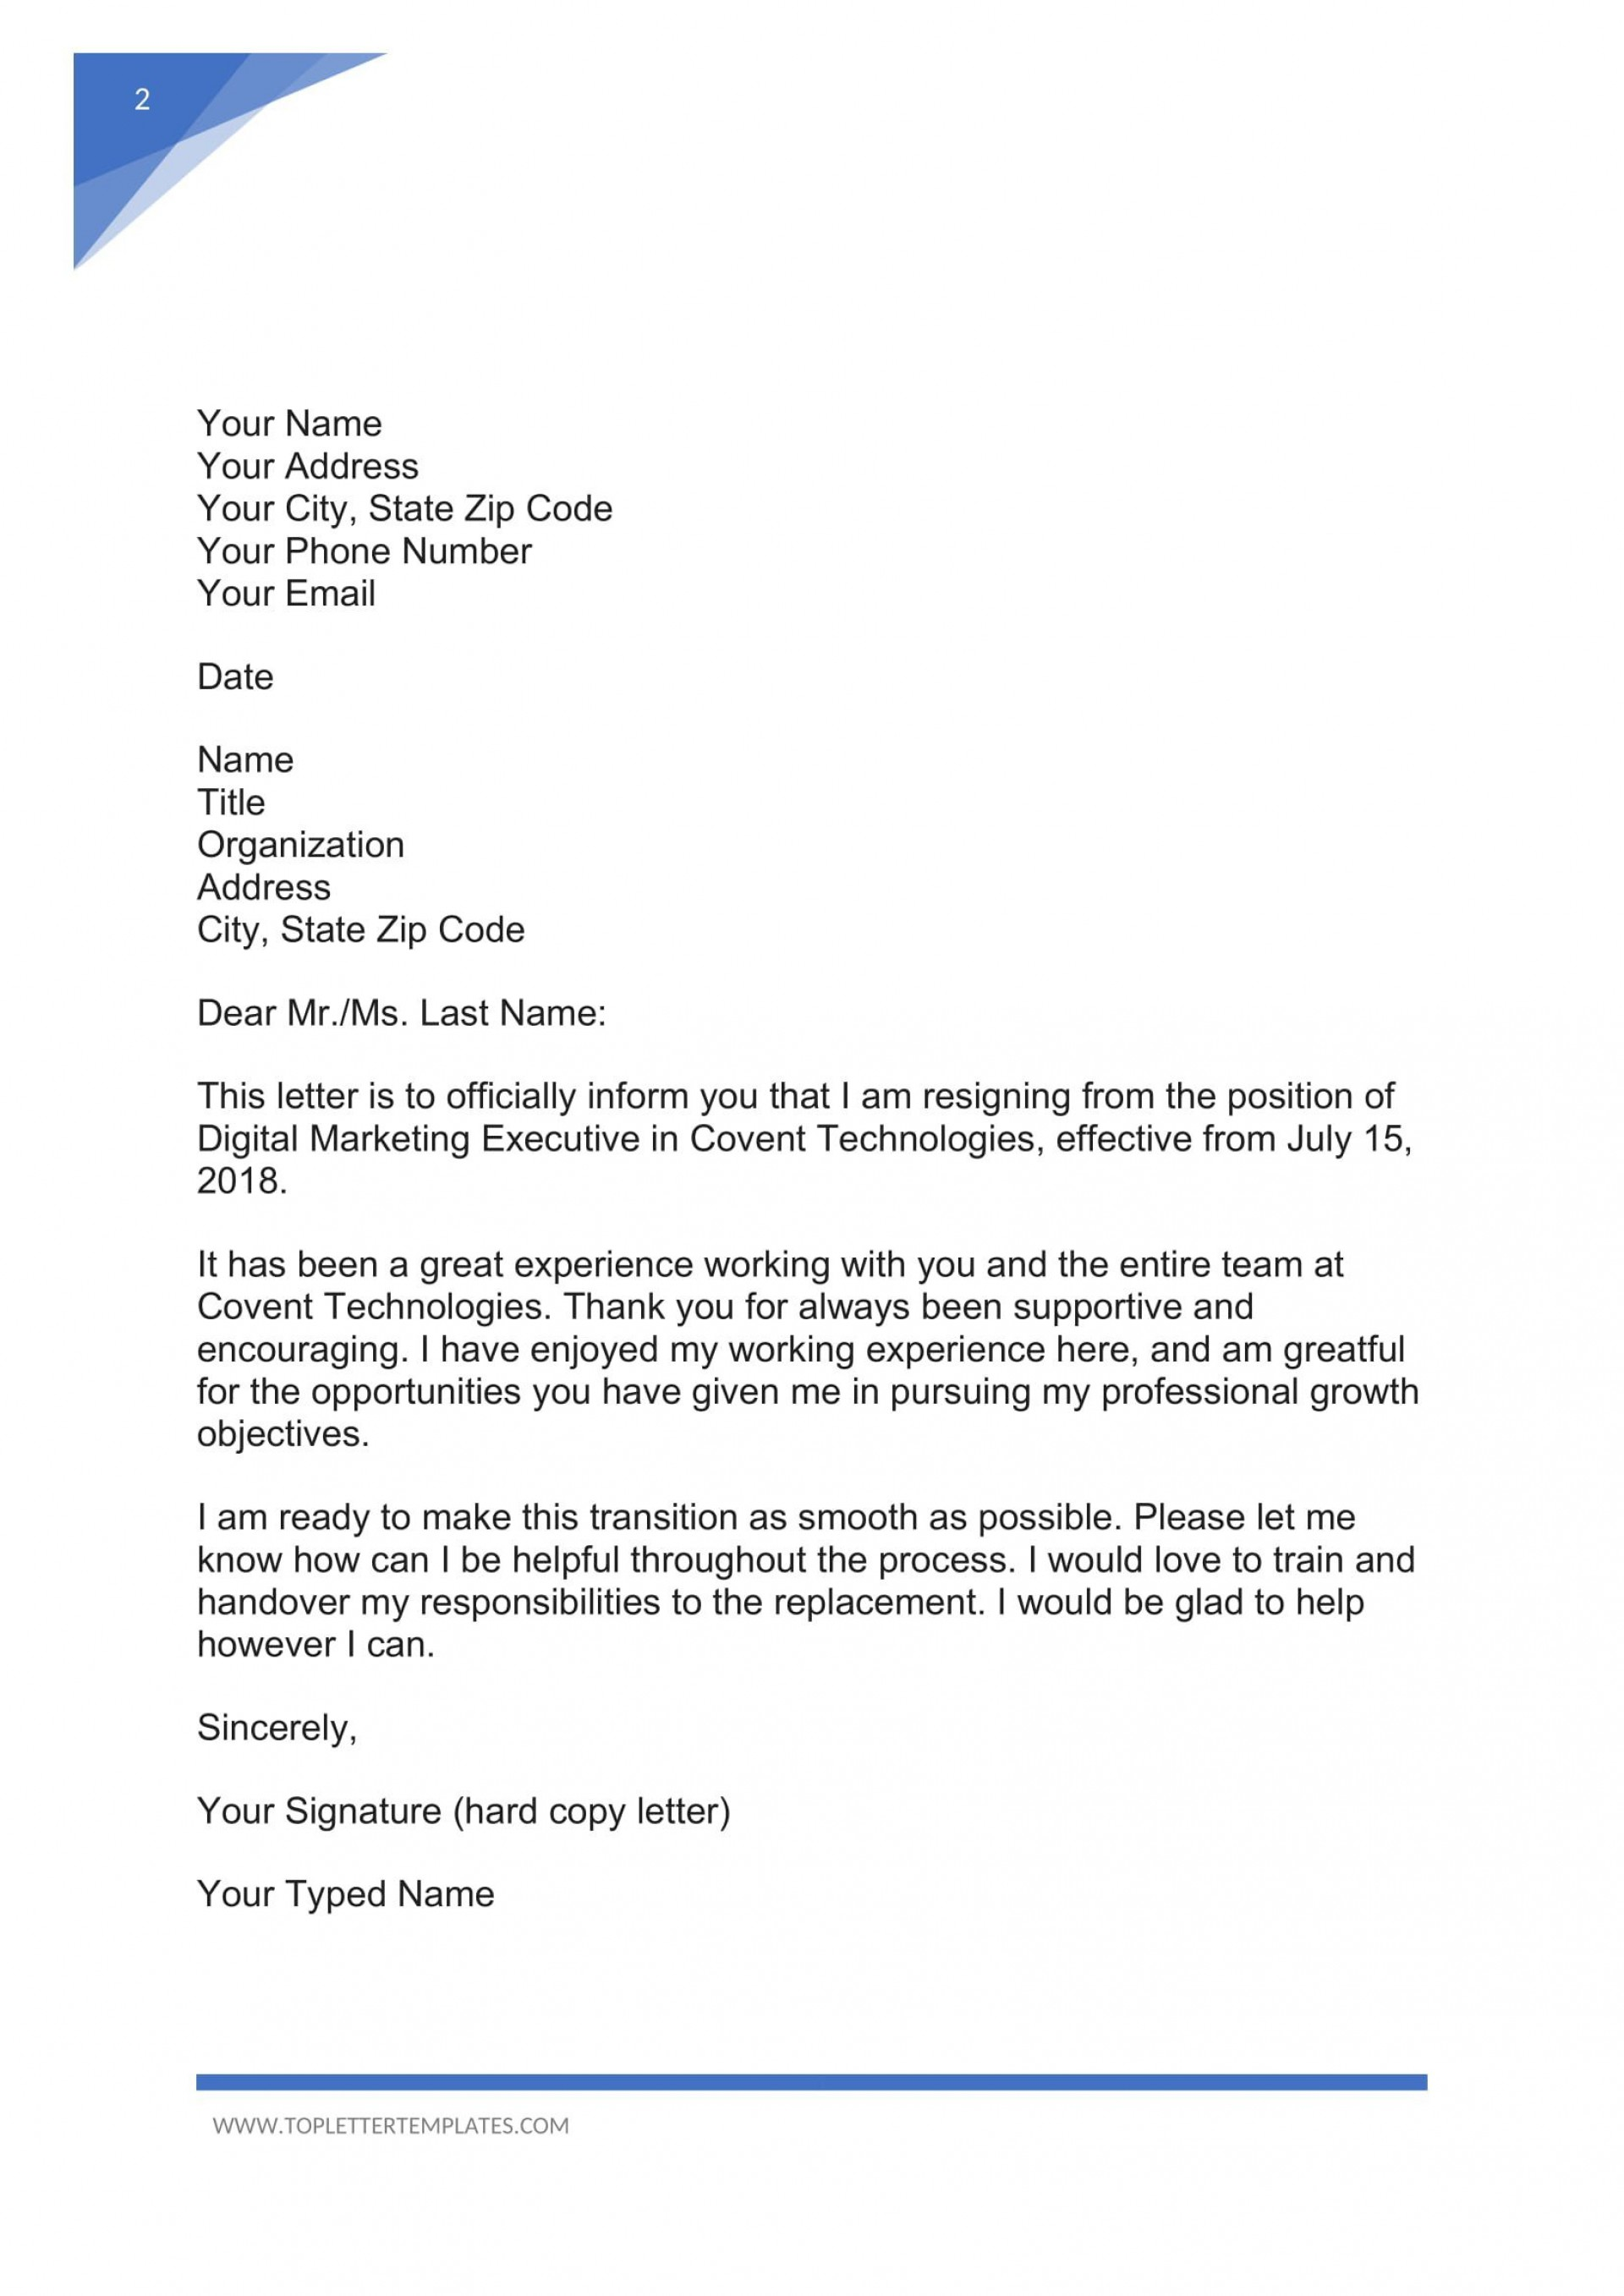 006 Formidable Sample Resignation Letter Template Email Photo 1920